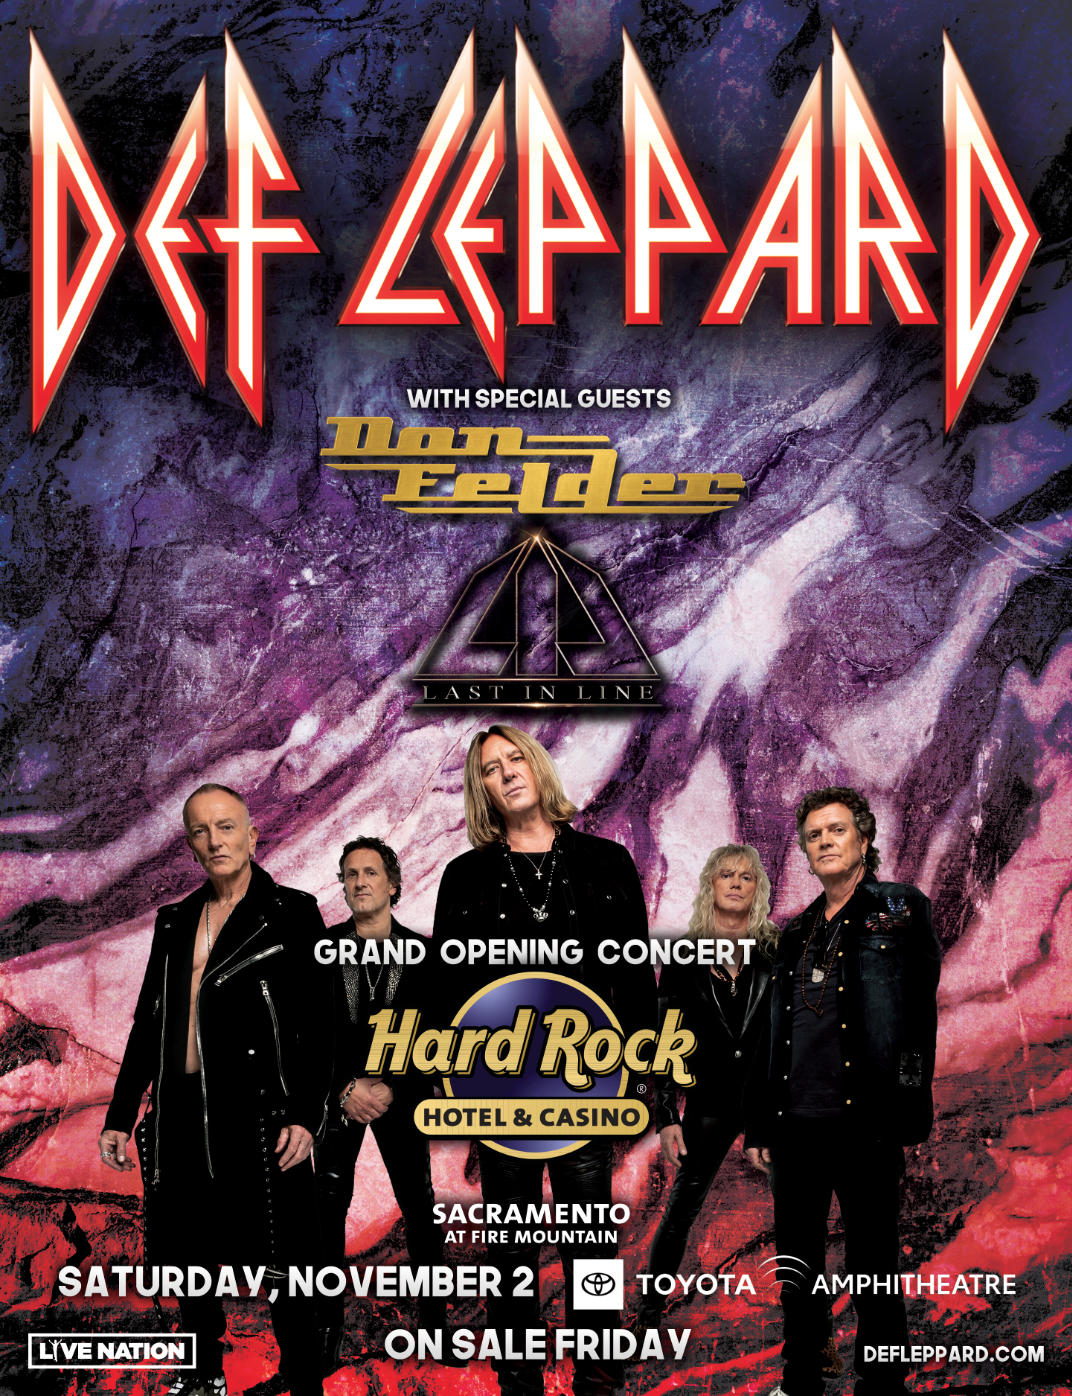 Def Leppard Journey Tour 2020.Concert Announced Def Leppard Rock Grand Opening Of Hard